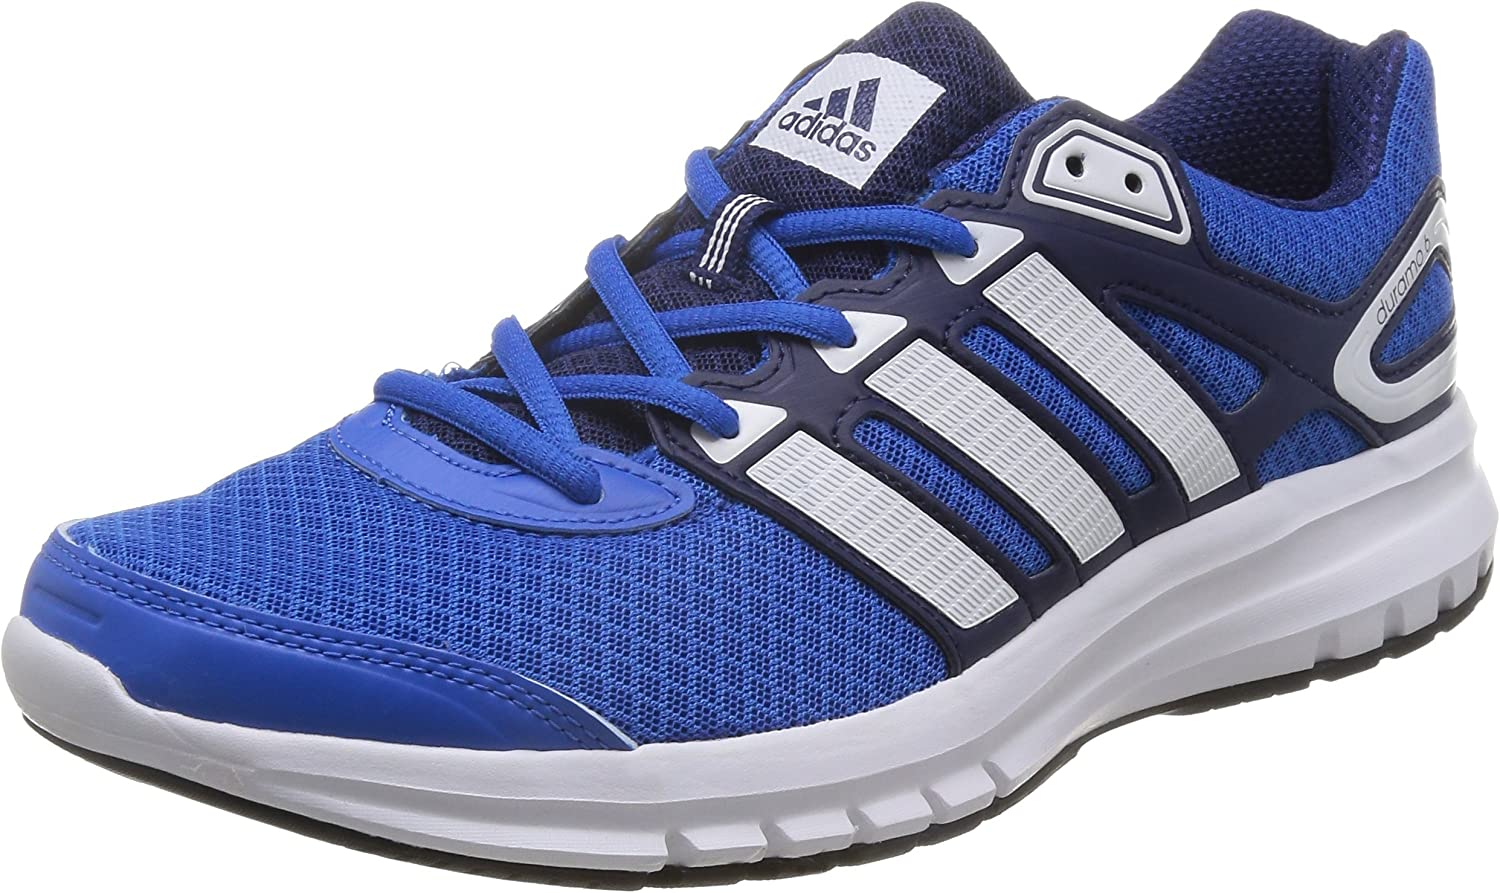 Adidas Duramo 6, Men's Running shoes